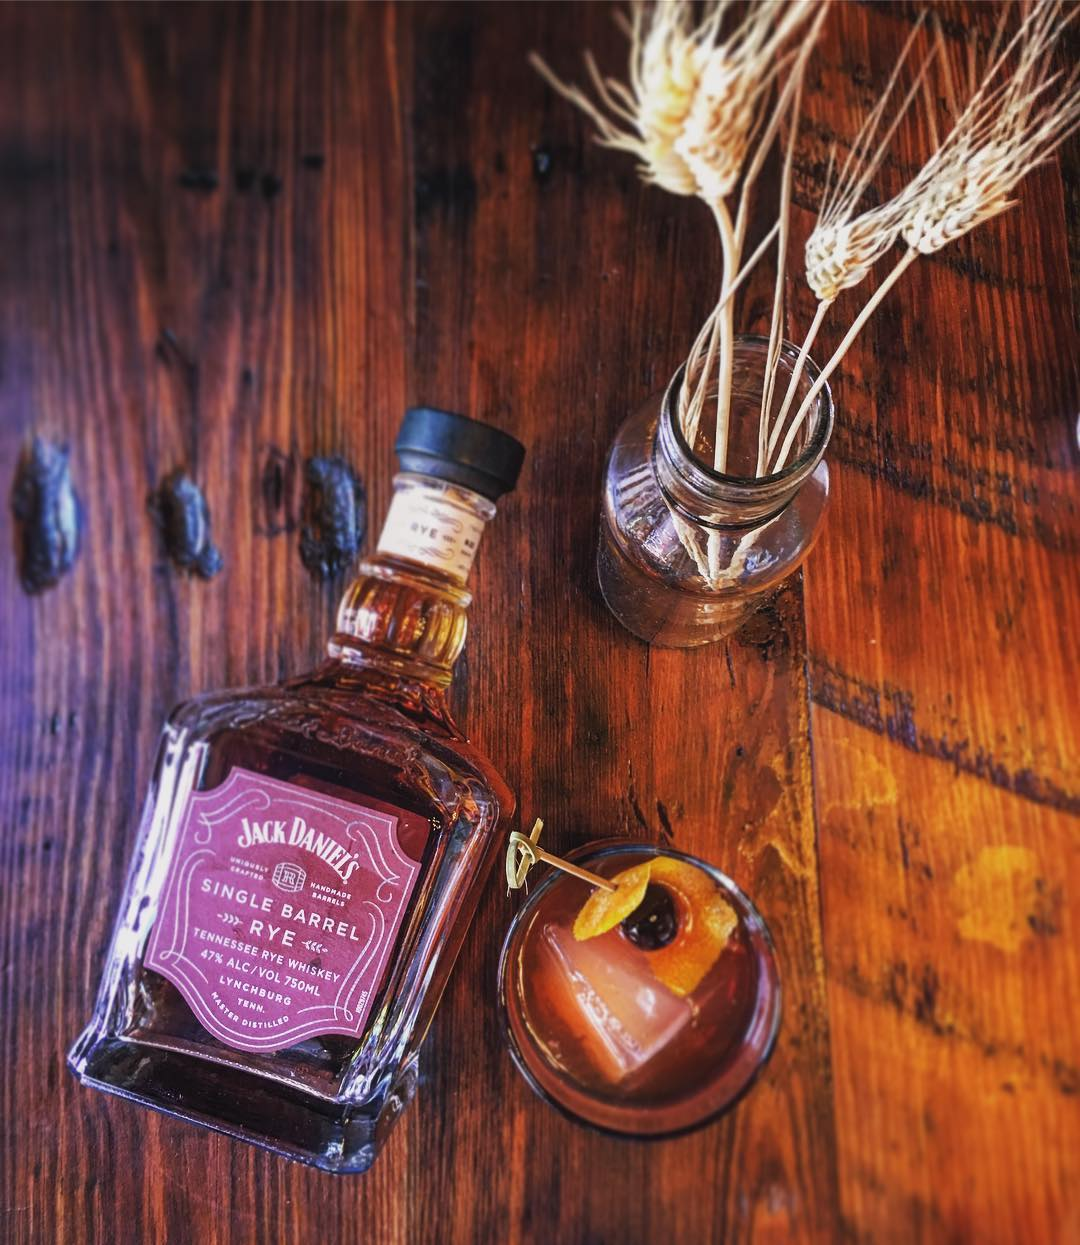 Jack Daniel's Single Barrel Rye… pretty tasty old fashioned @savwhiskeysipper…